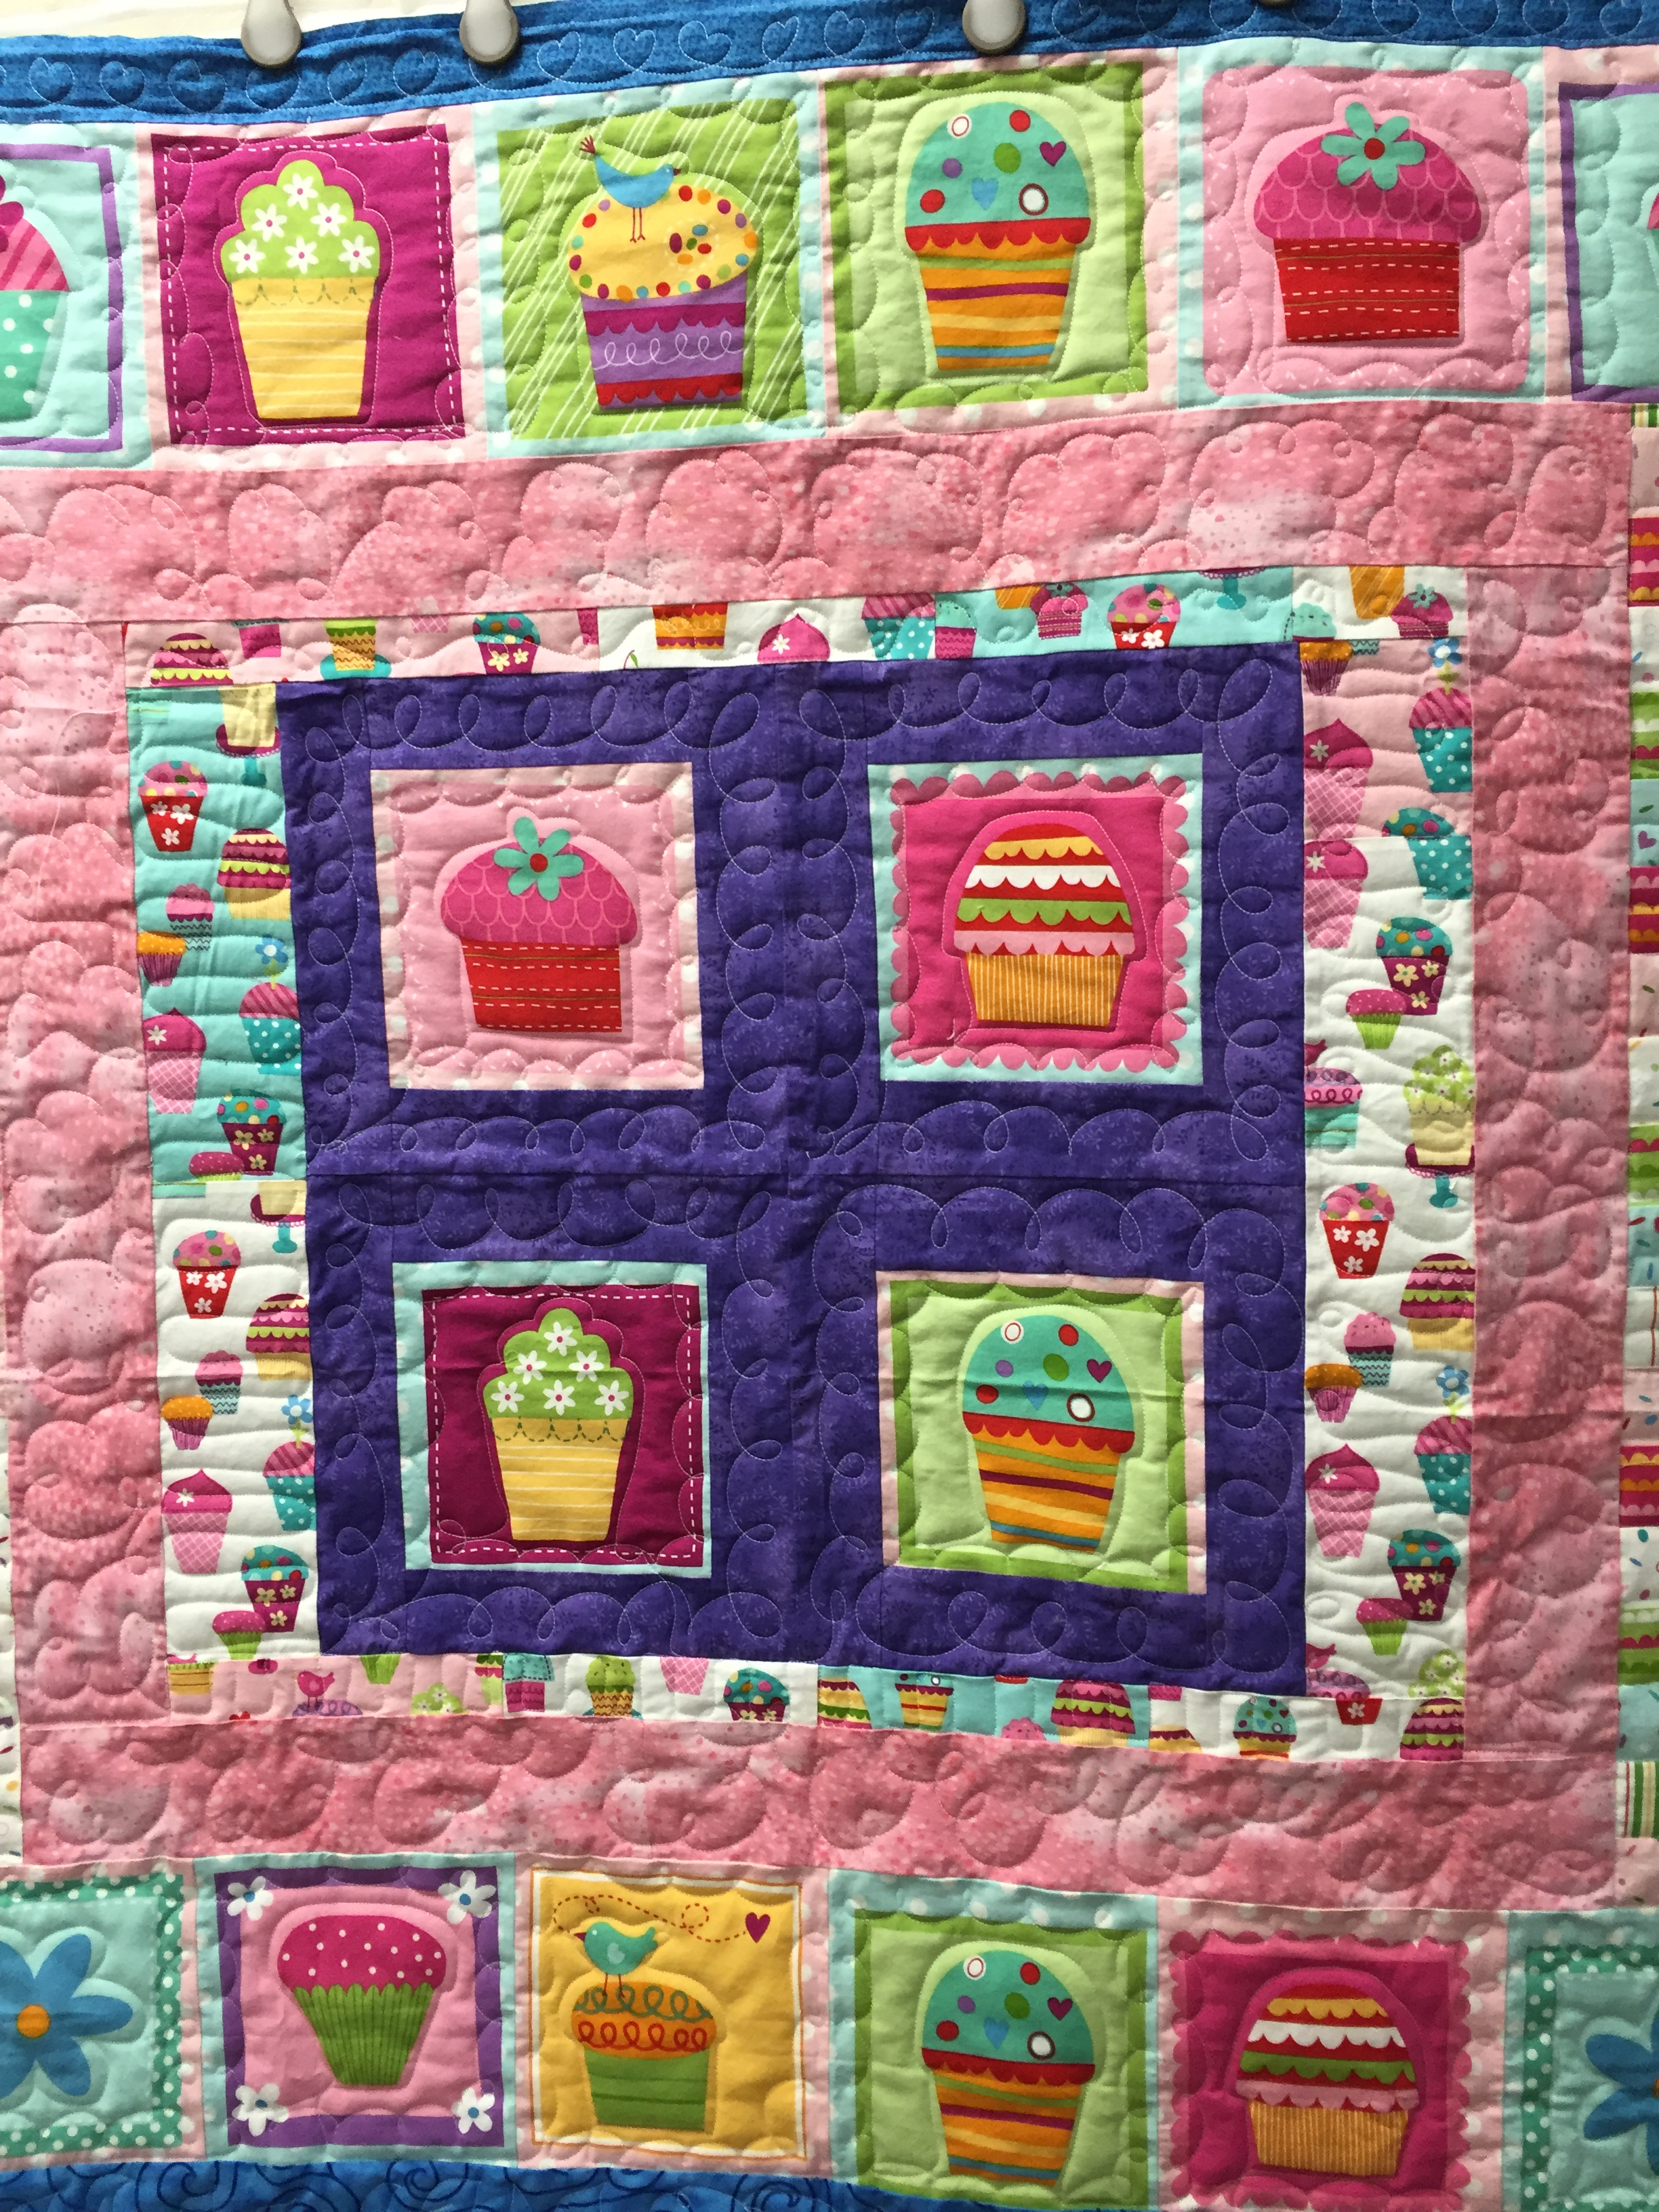 Quilt Made By A Renter At Over The Top Quilting Studio